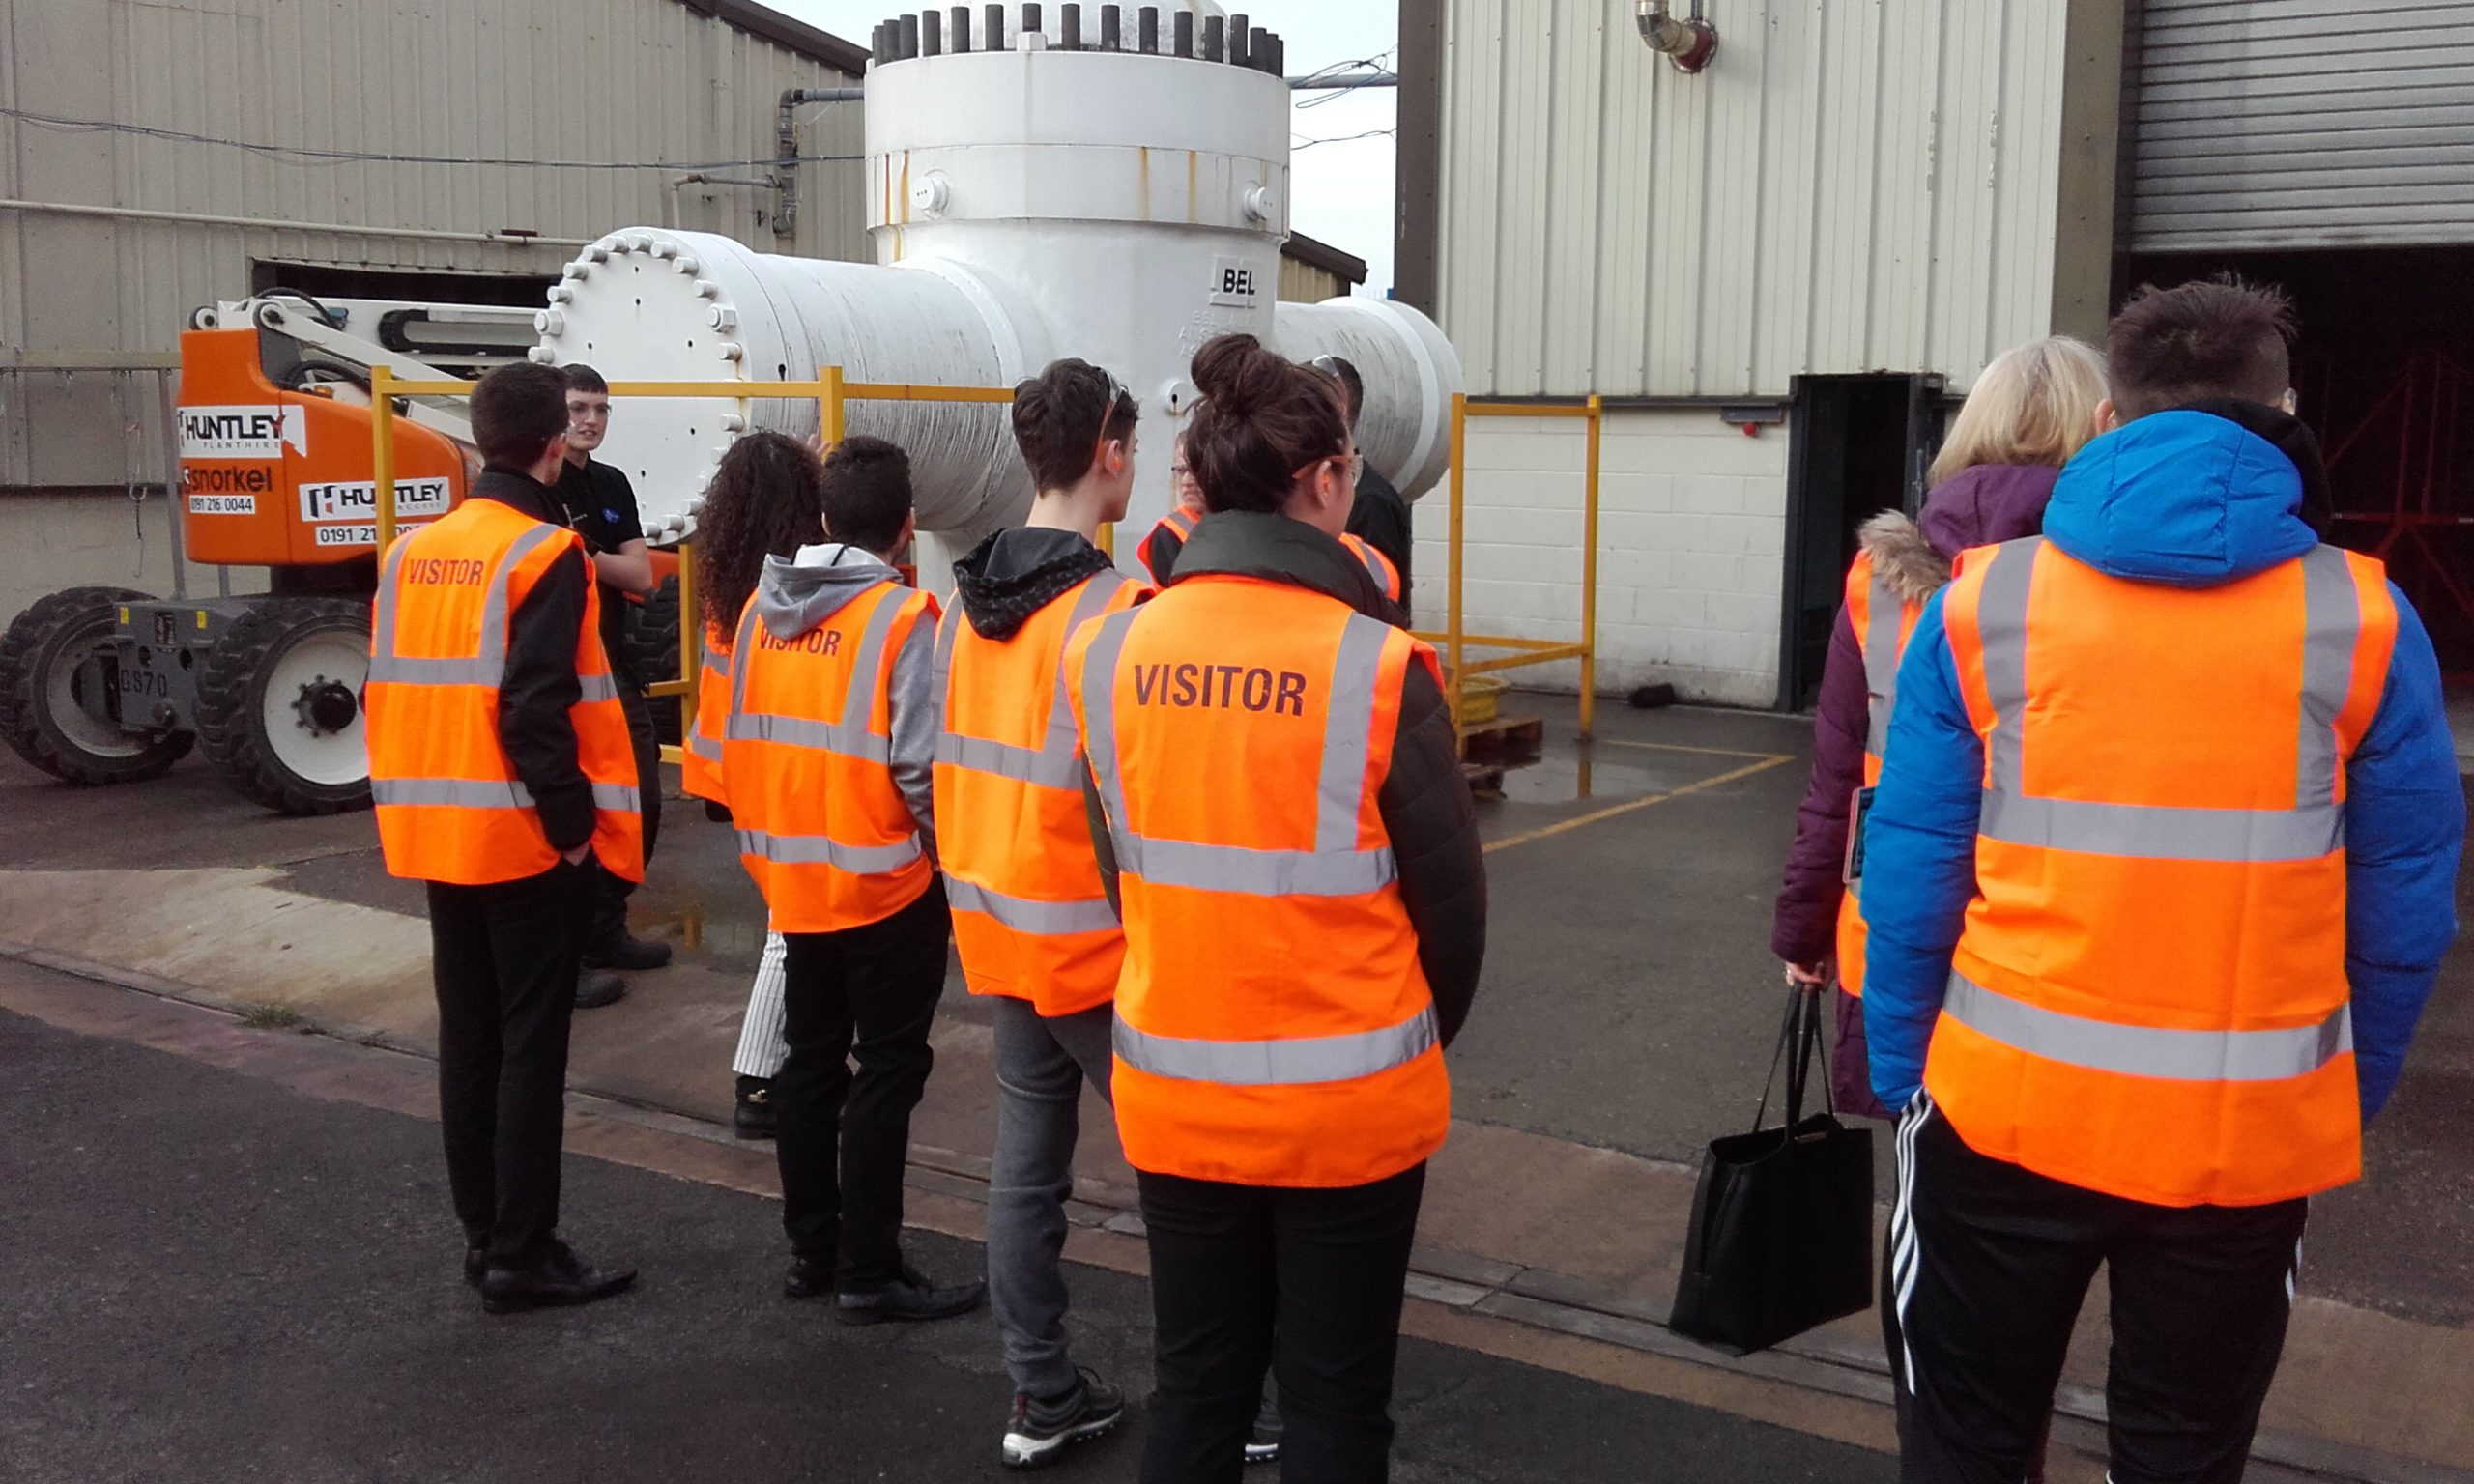 Students visiting BEL Valves, part of the British Engines Group, for an apprenticeship myth busting session with NE1 Can to debunk apprenticeship myths